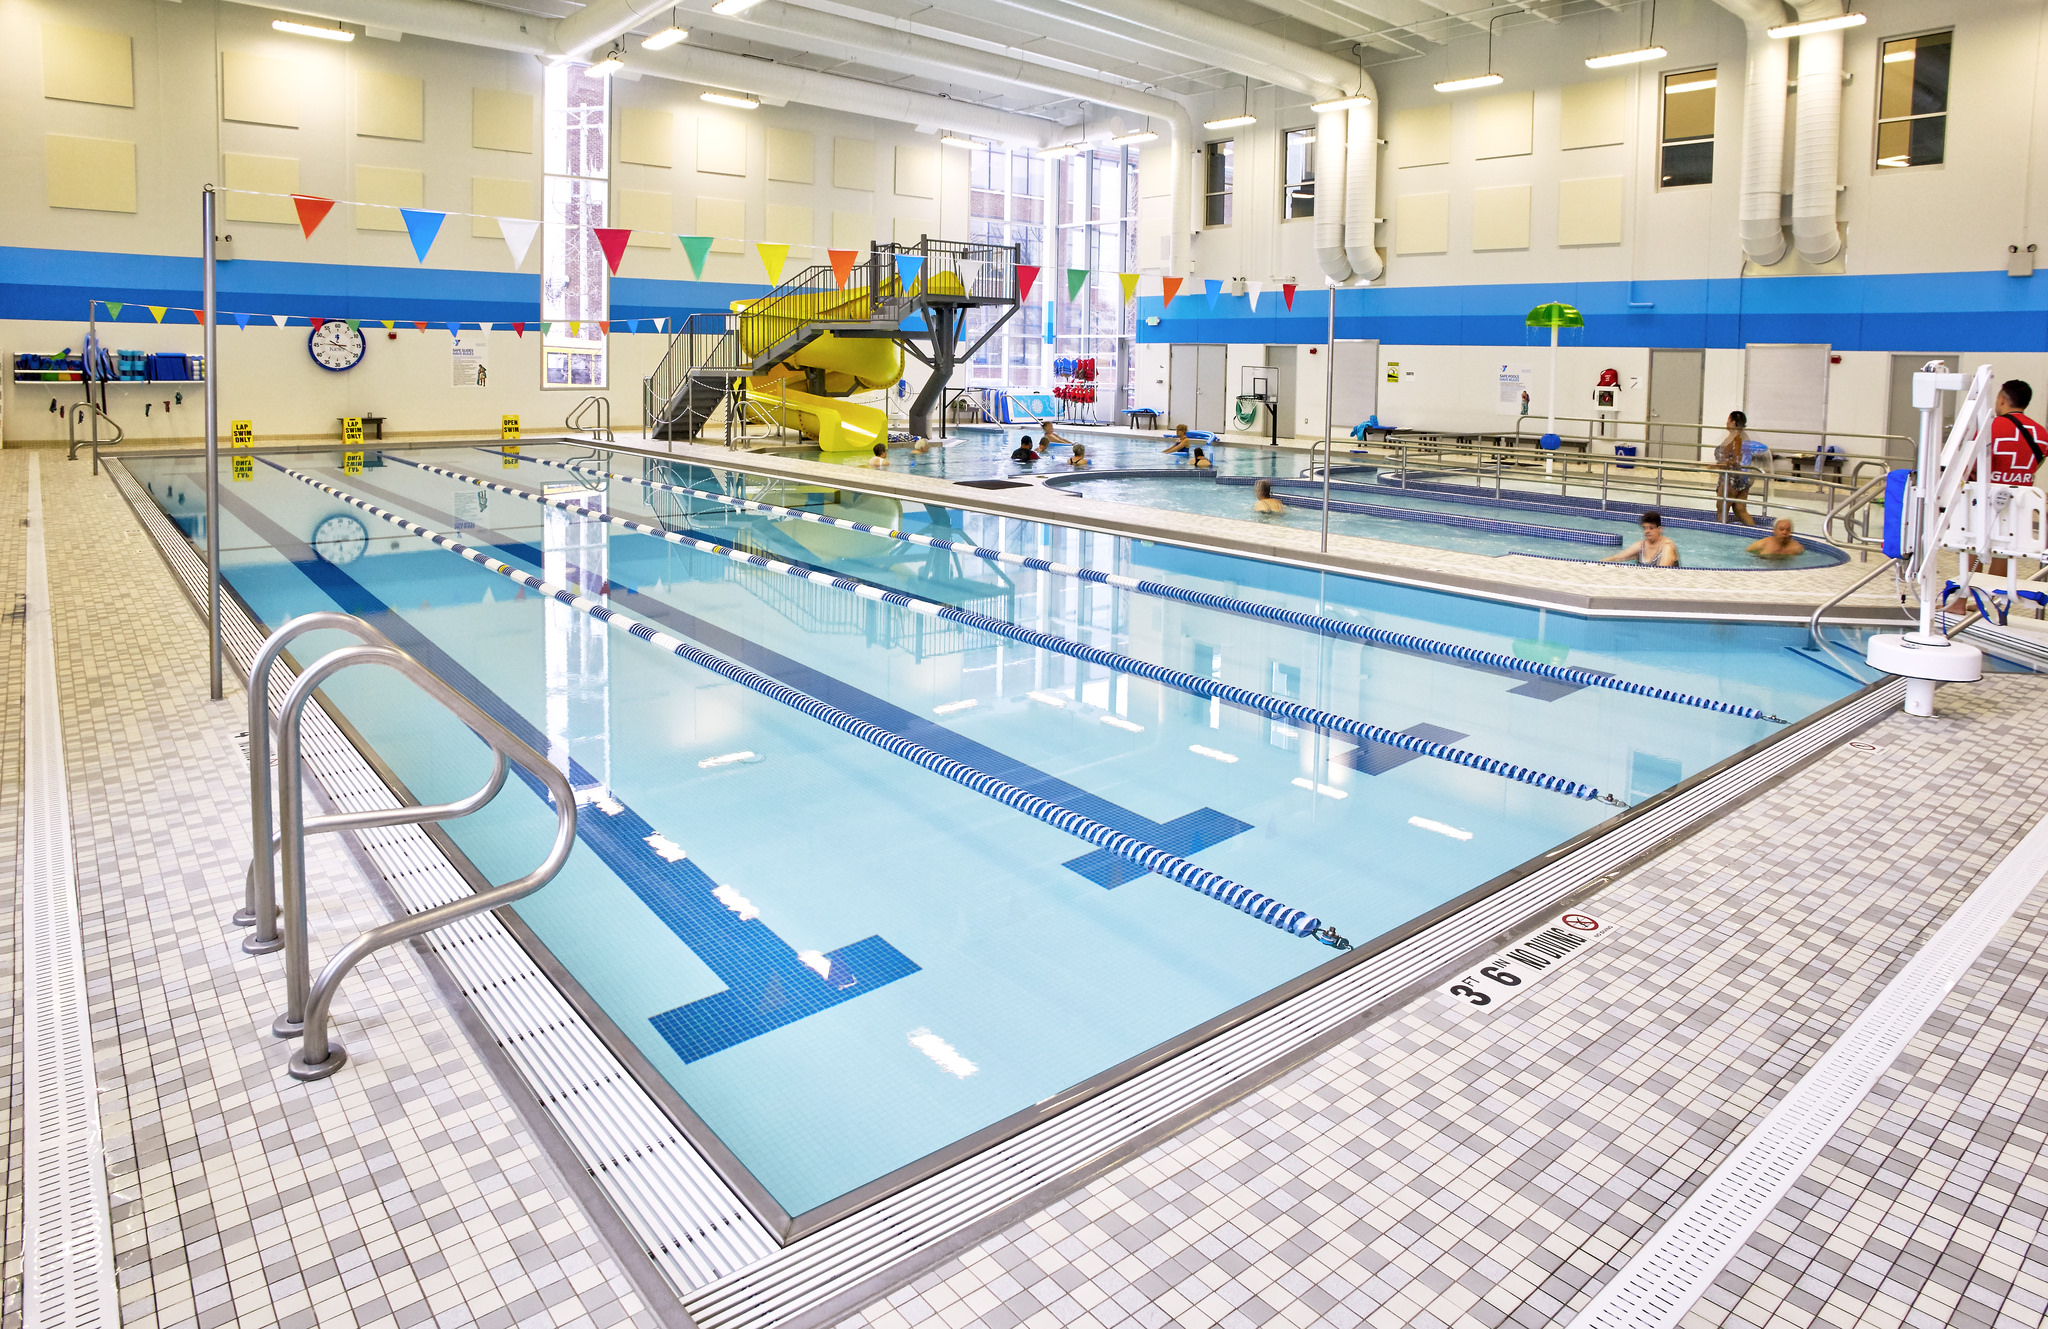 Lap pool at the St. Paul Midway YMCA in MN